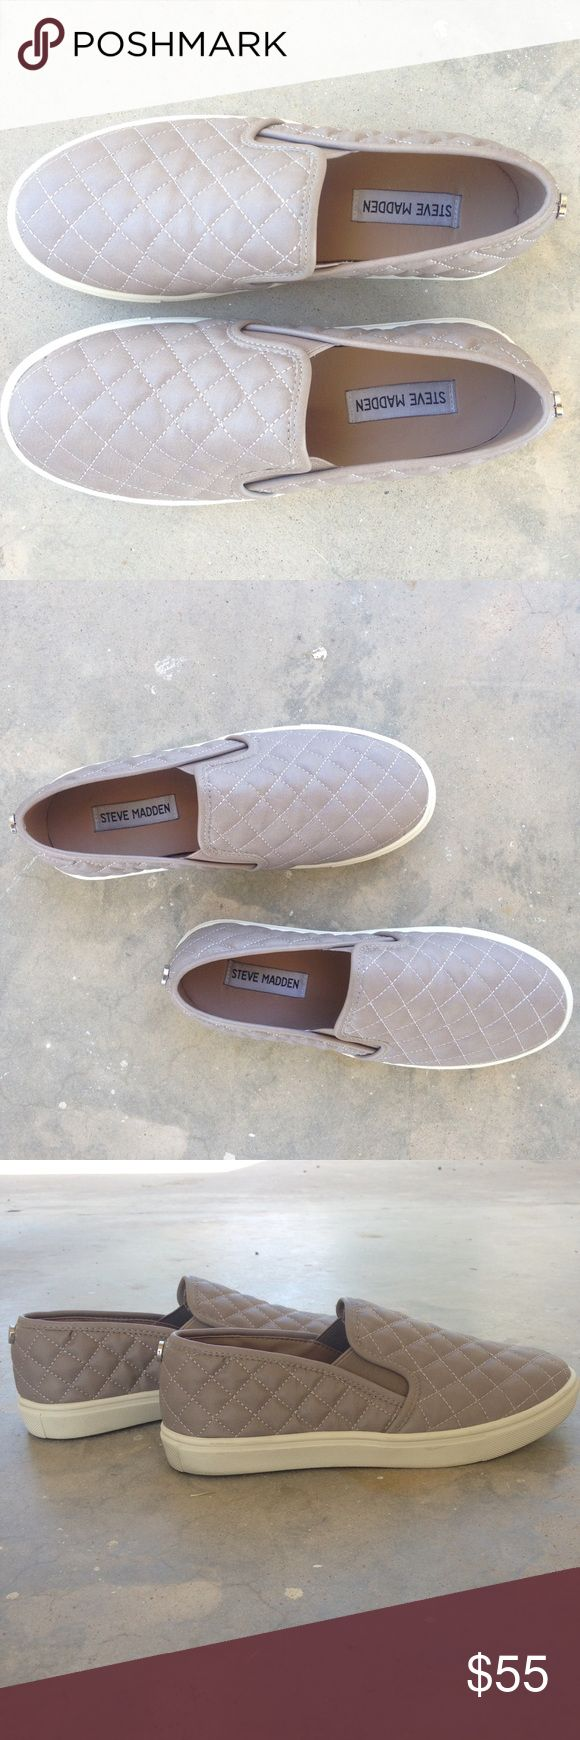 "Steve Madden Ecentrcq Slip-On Sneakers These quilted slip-ons are a chic and comfortable option for everyday. The taupe grey color of these is neutral making them easy to style. These feature a quilted faux leather upper, rubber outsole, and a 1"" platform. Steve Madden Shoes Sneakers"